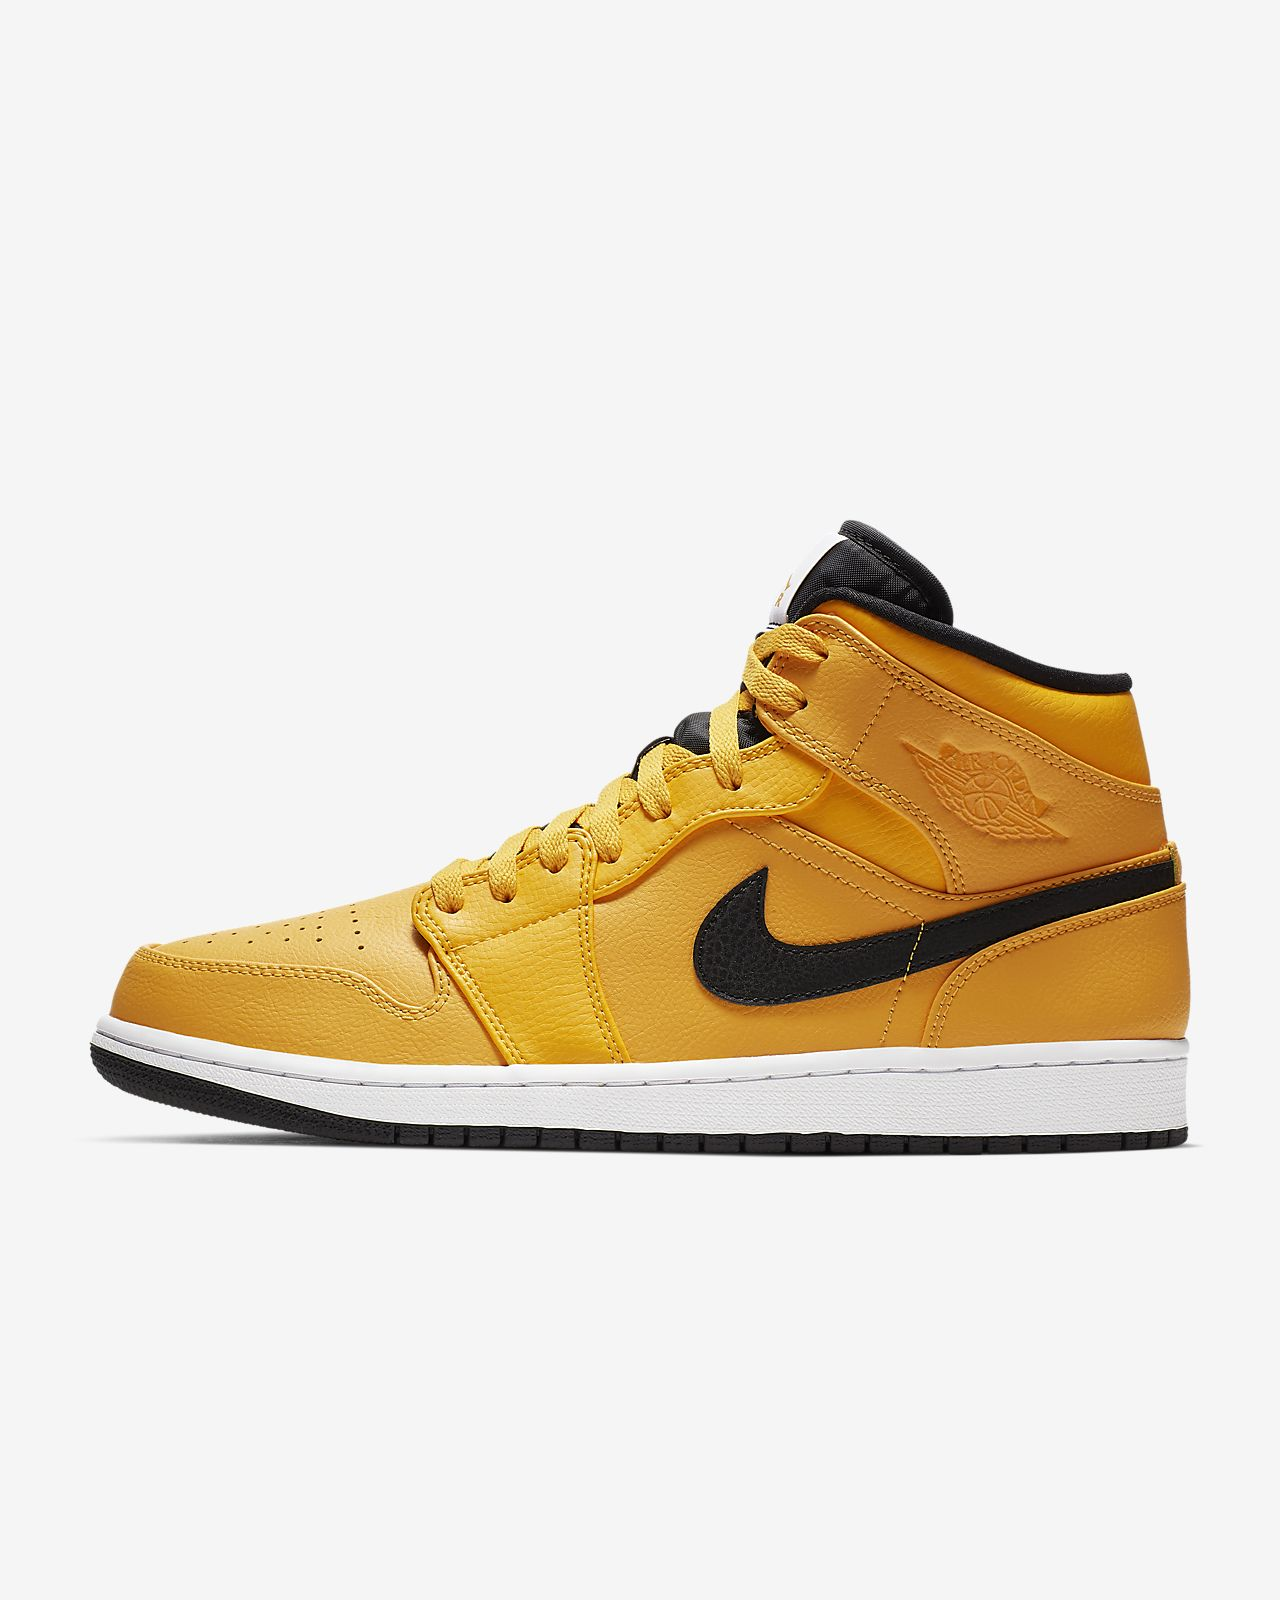 03a0134adac7 Air Jordan 1 Mid Men s Shoe. Nike.com